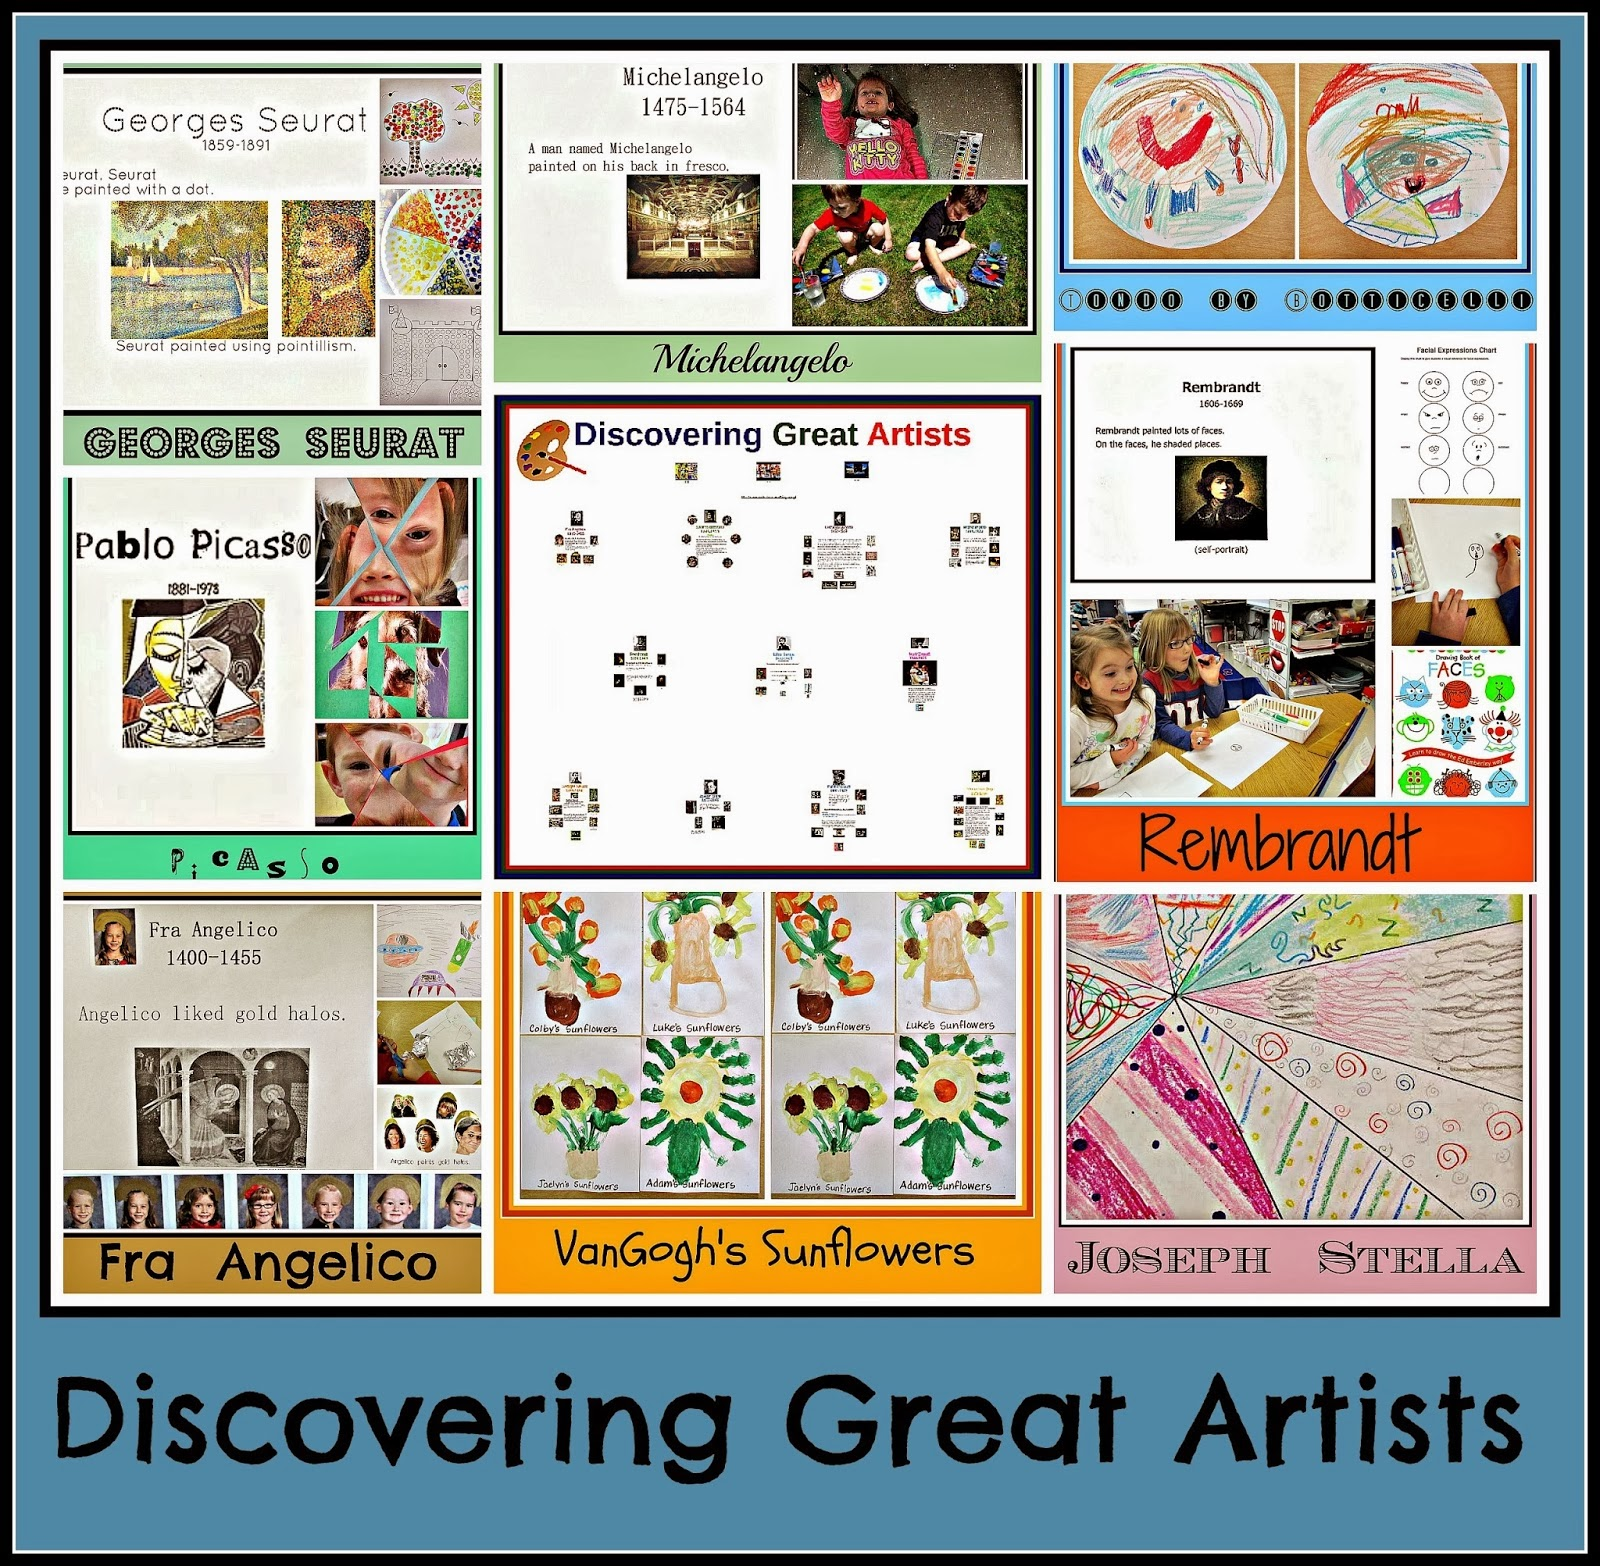 http://prekandksharing.blogspot.com/2014/02/discovering-great-artists.html